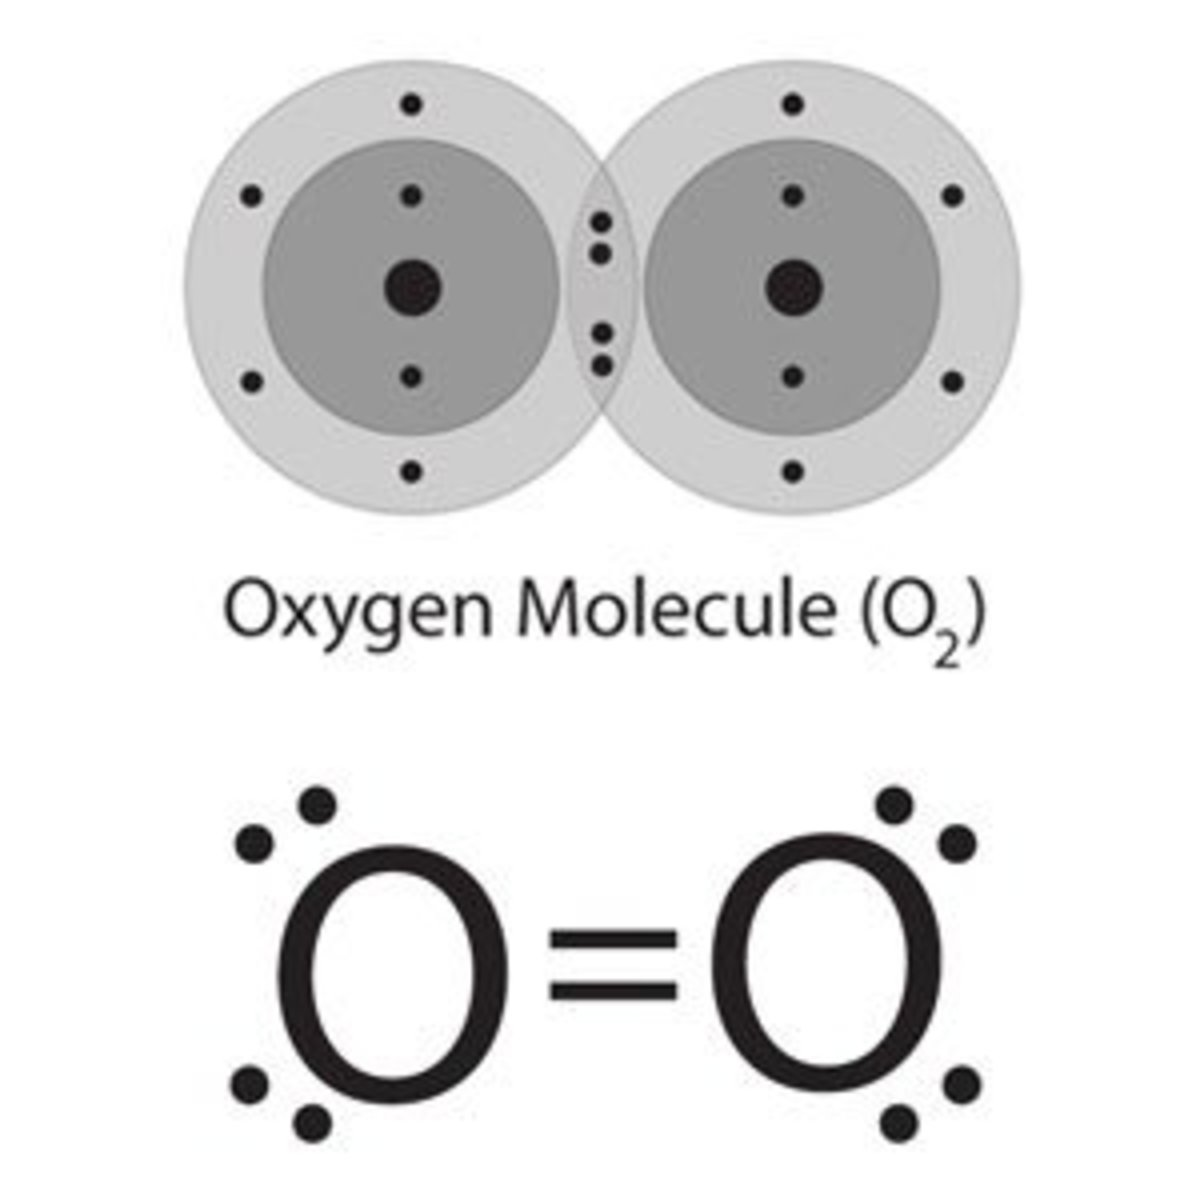 Covalent bonding in Oxygen molecule